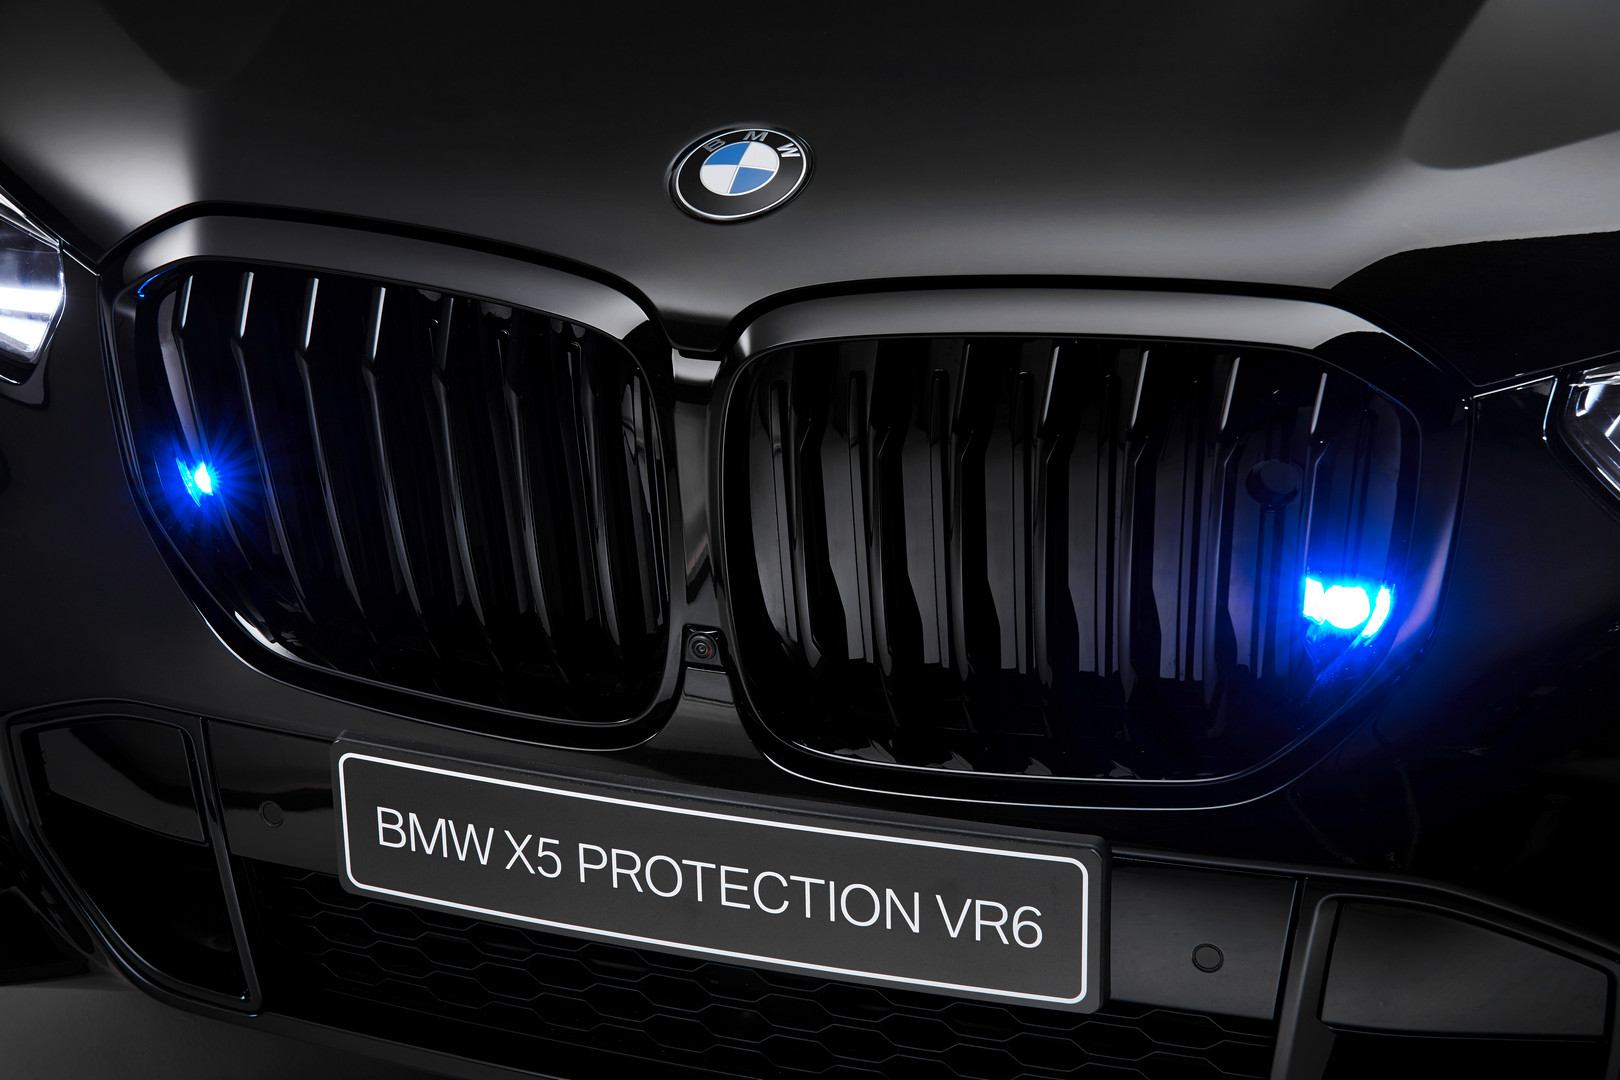 BMW X5 Grille Sirens